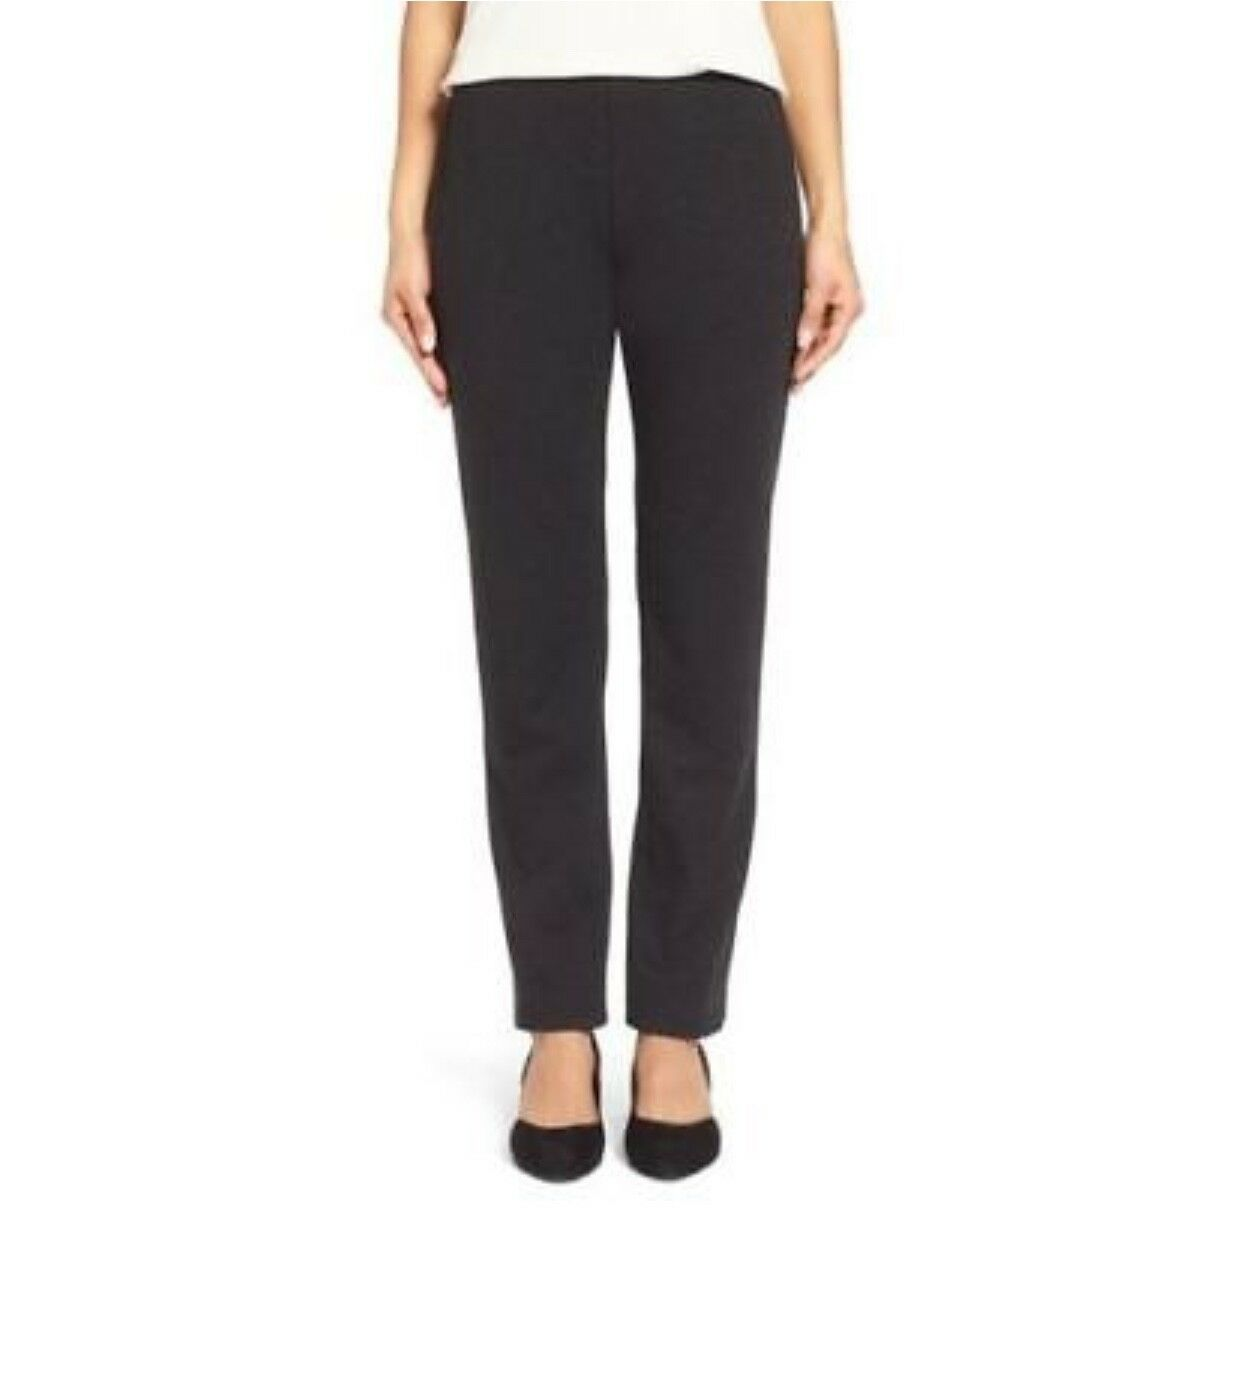 Eileen Fisher Charcoal Melange Viscose Stretch Ponte Slim Pant Size LRG NWT